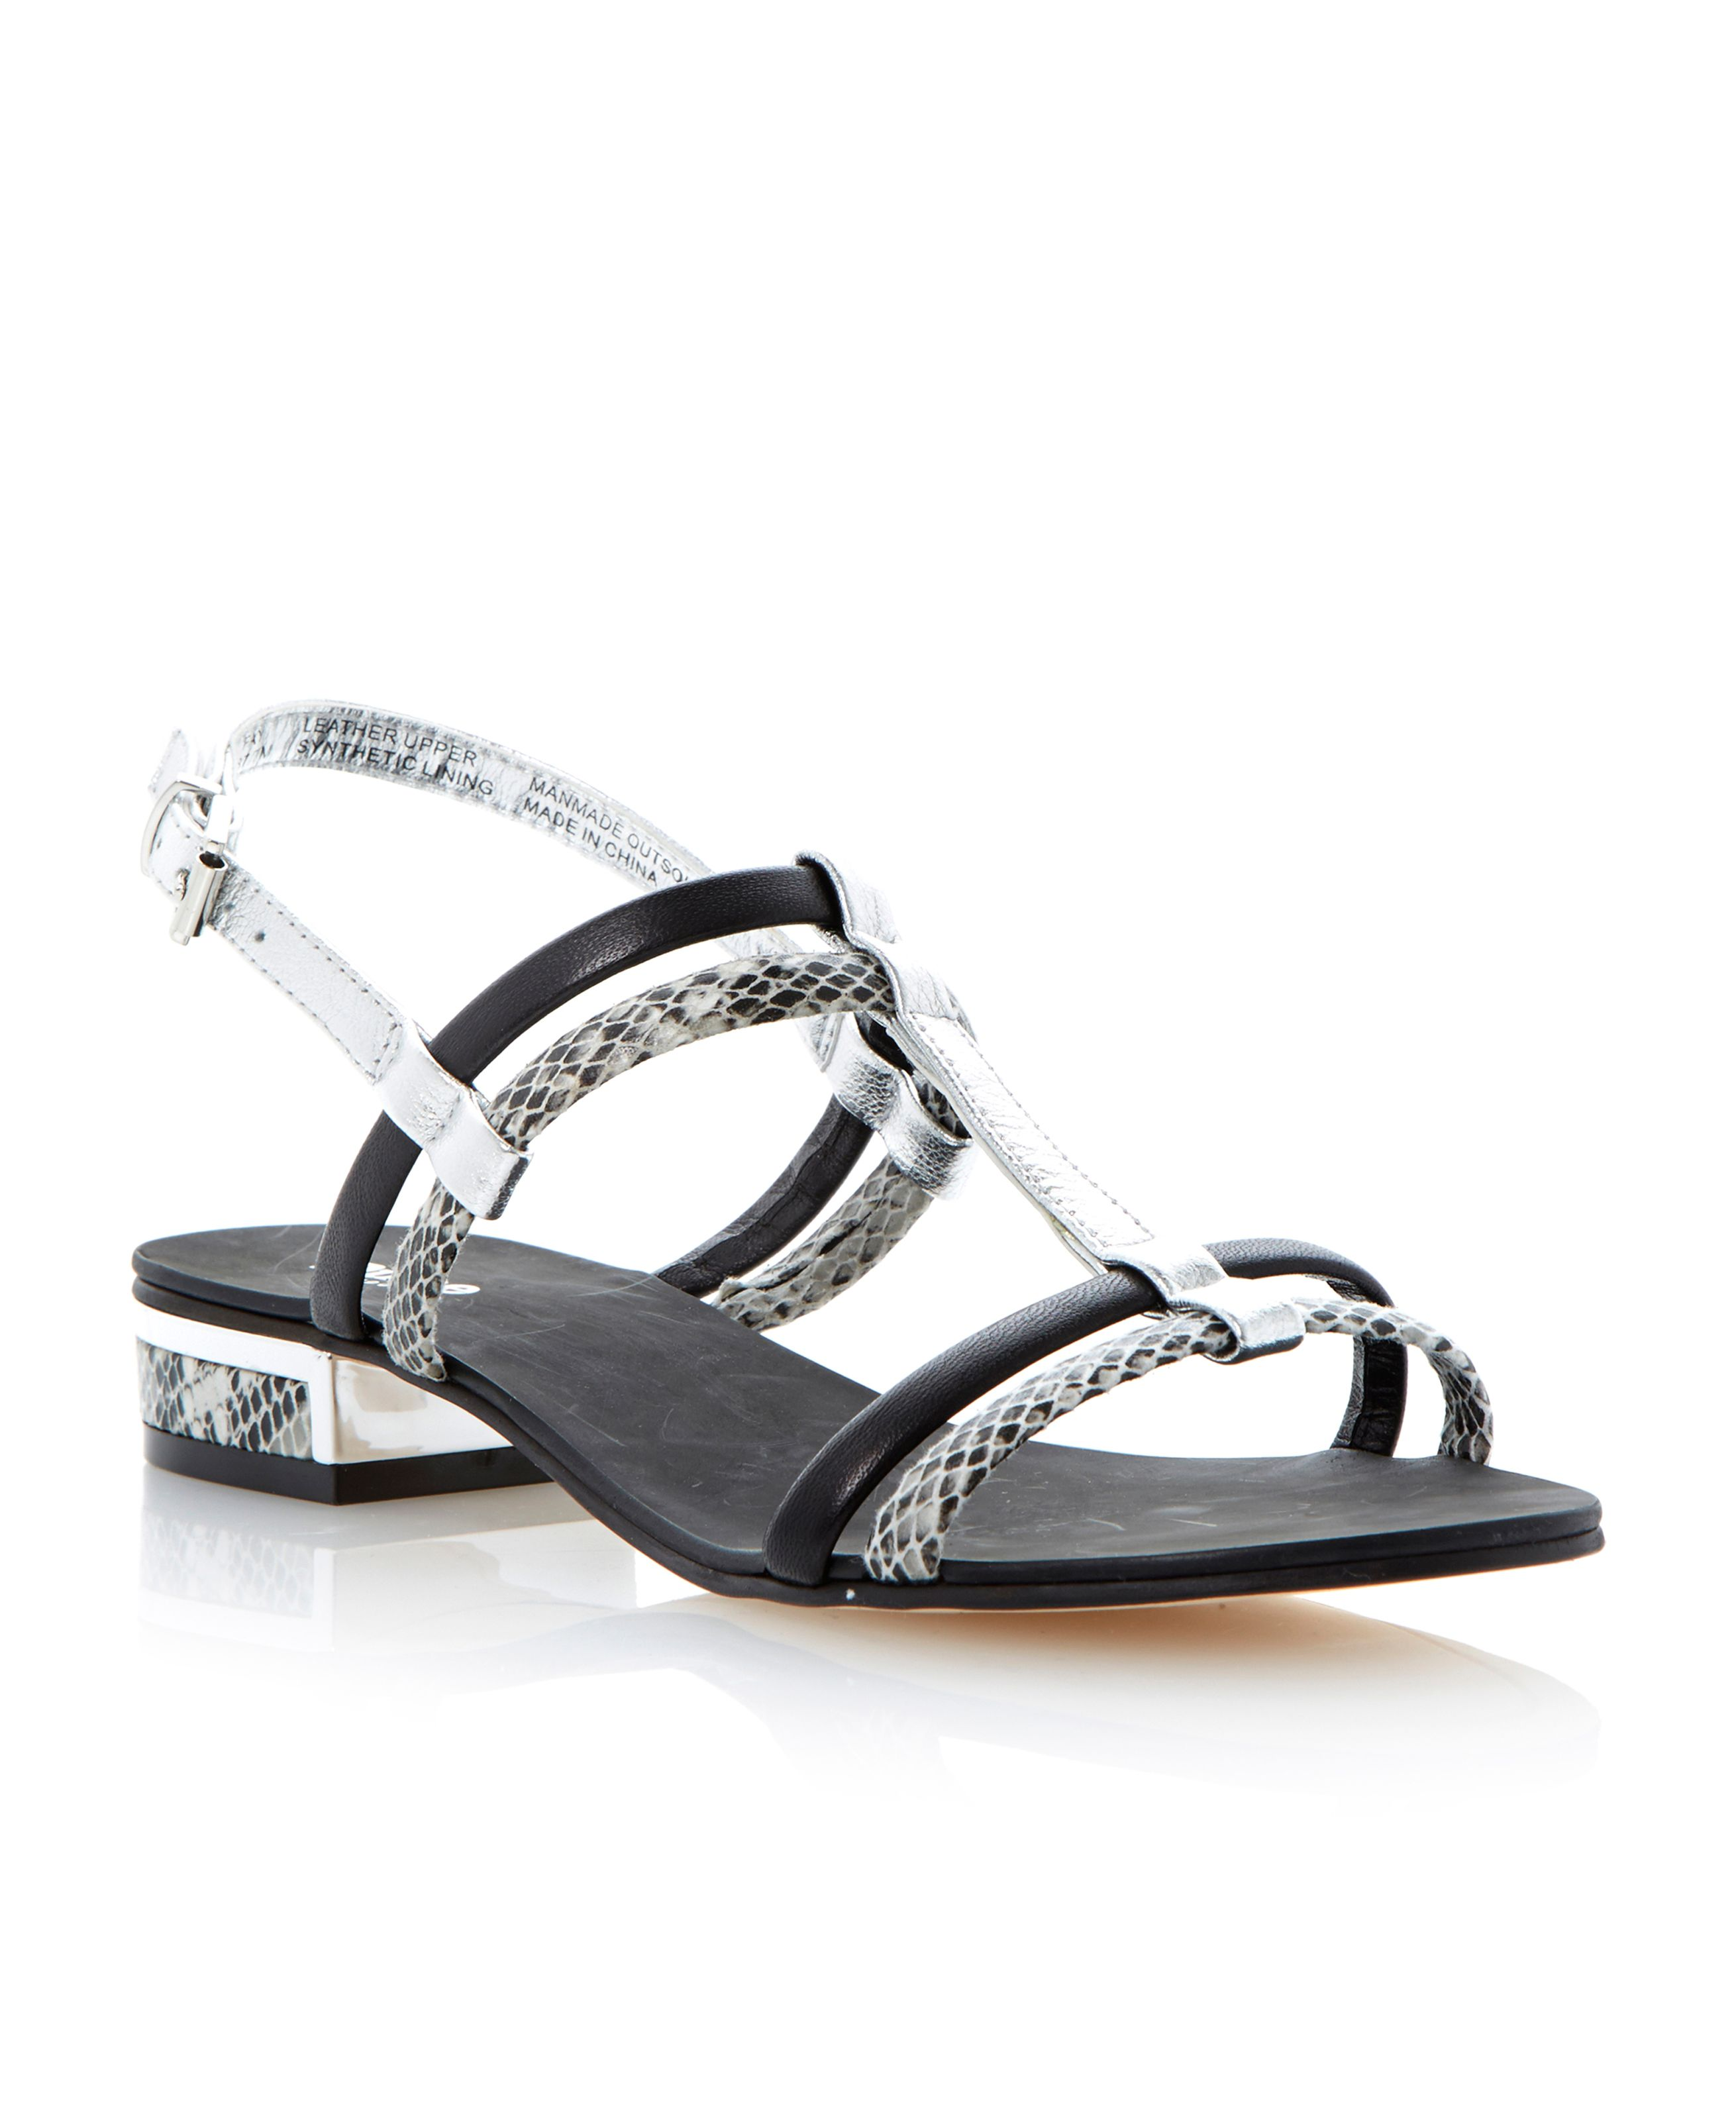 Fay leather block heel buckle sandals